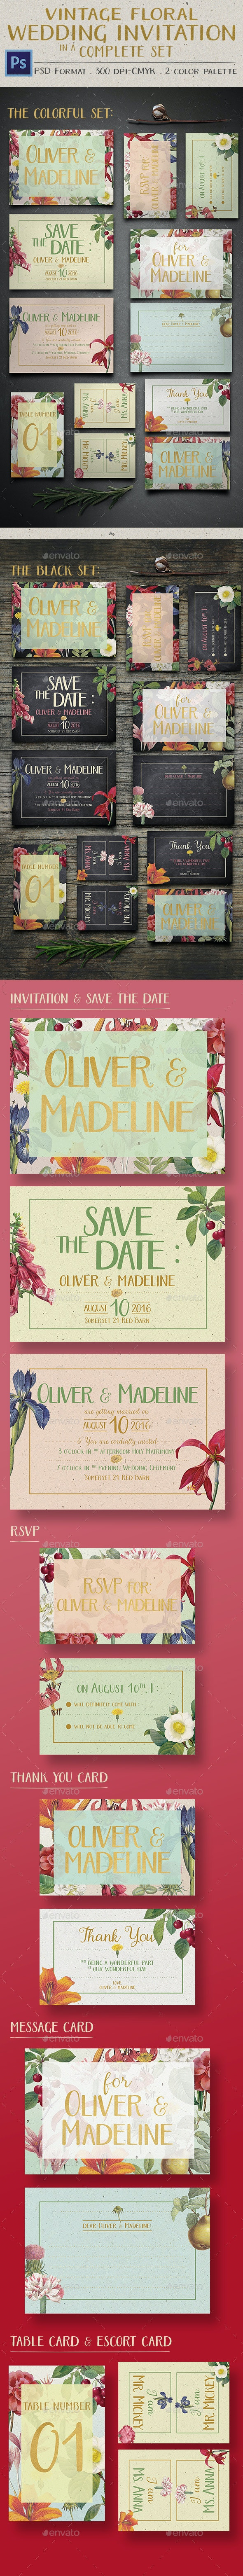 Vintage Floral Wedding Invitation - Invitations Cards & Invites